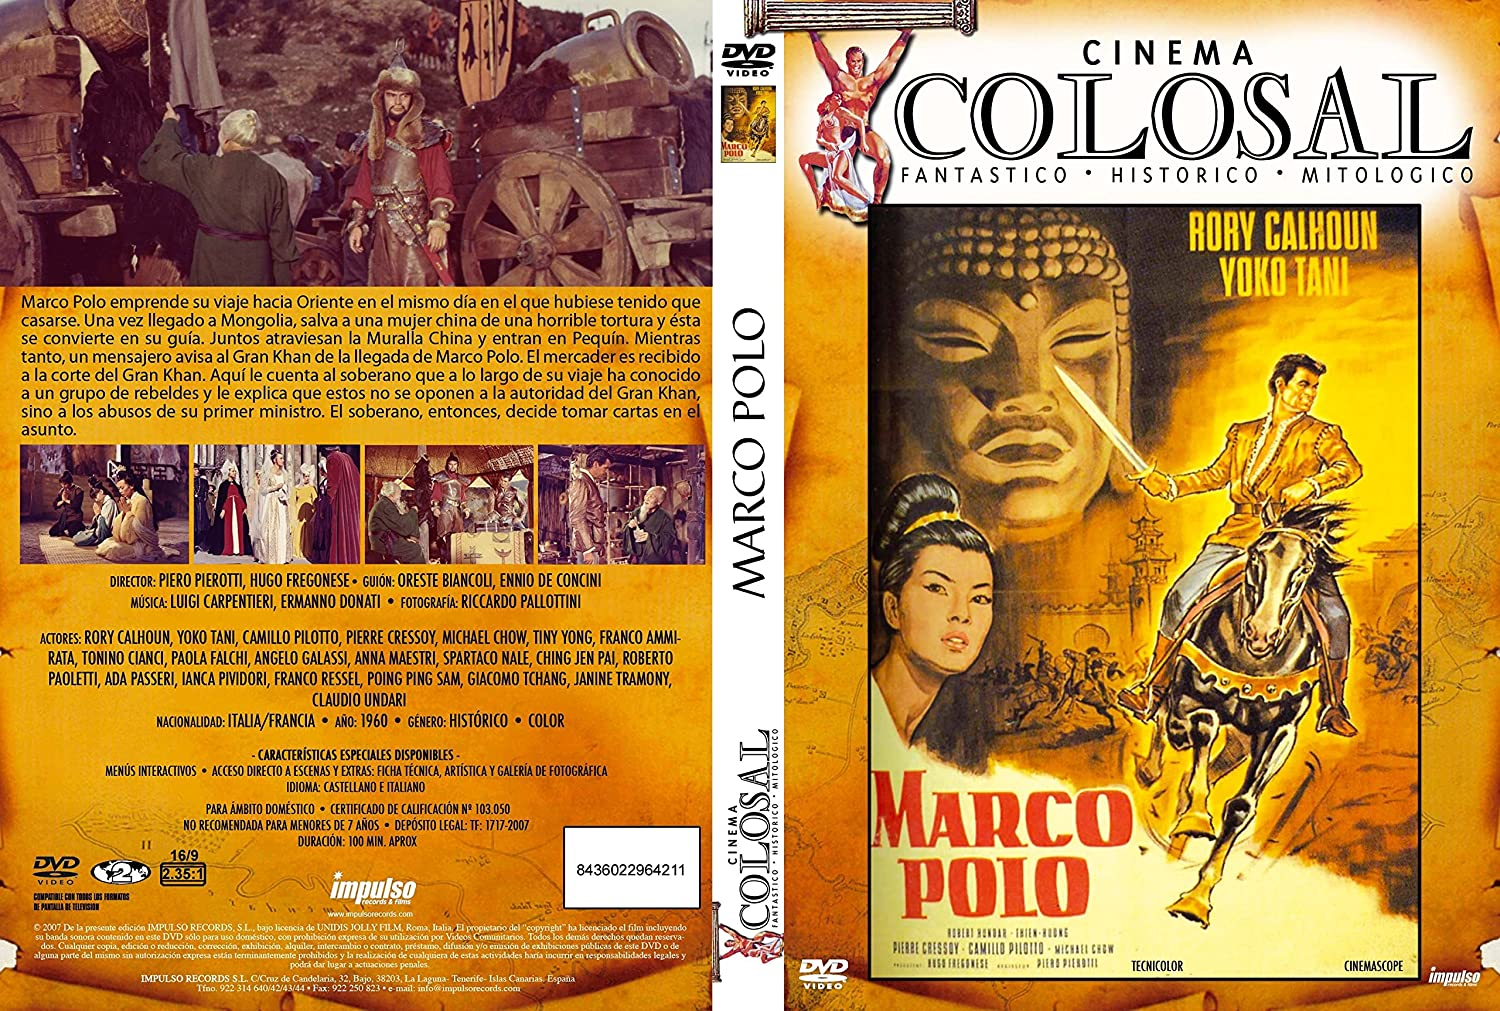 Marco Polo [DVD]: Amazon.es: Rory Calhouin, Yoko Tani, Piero ...